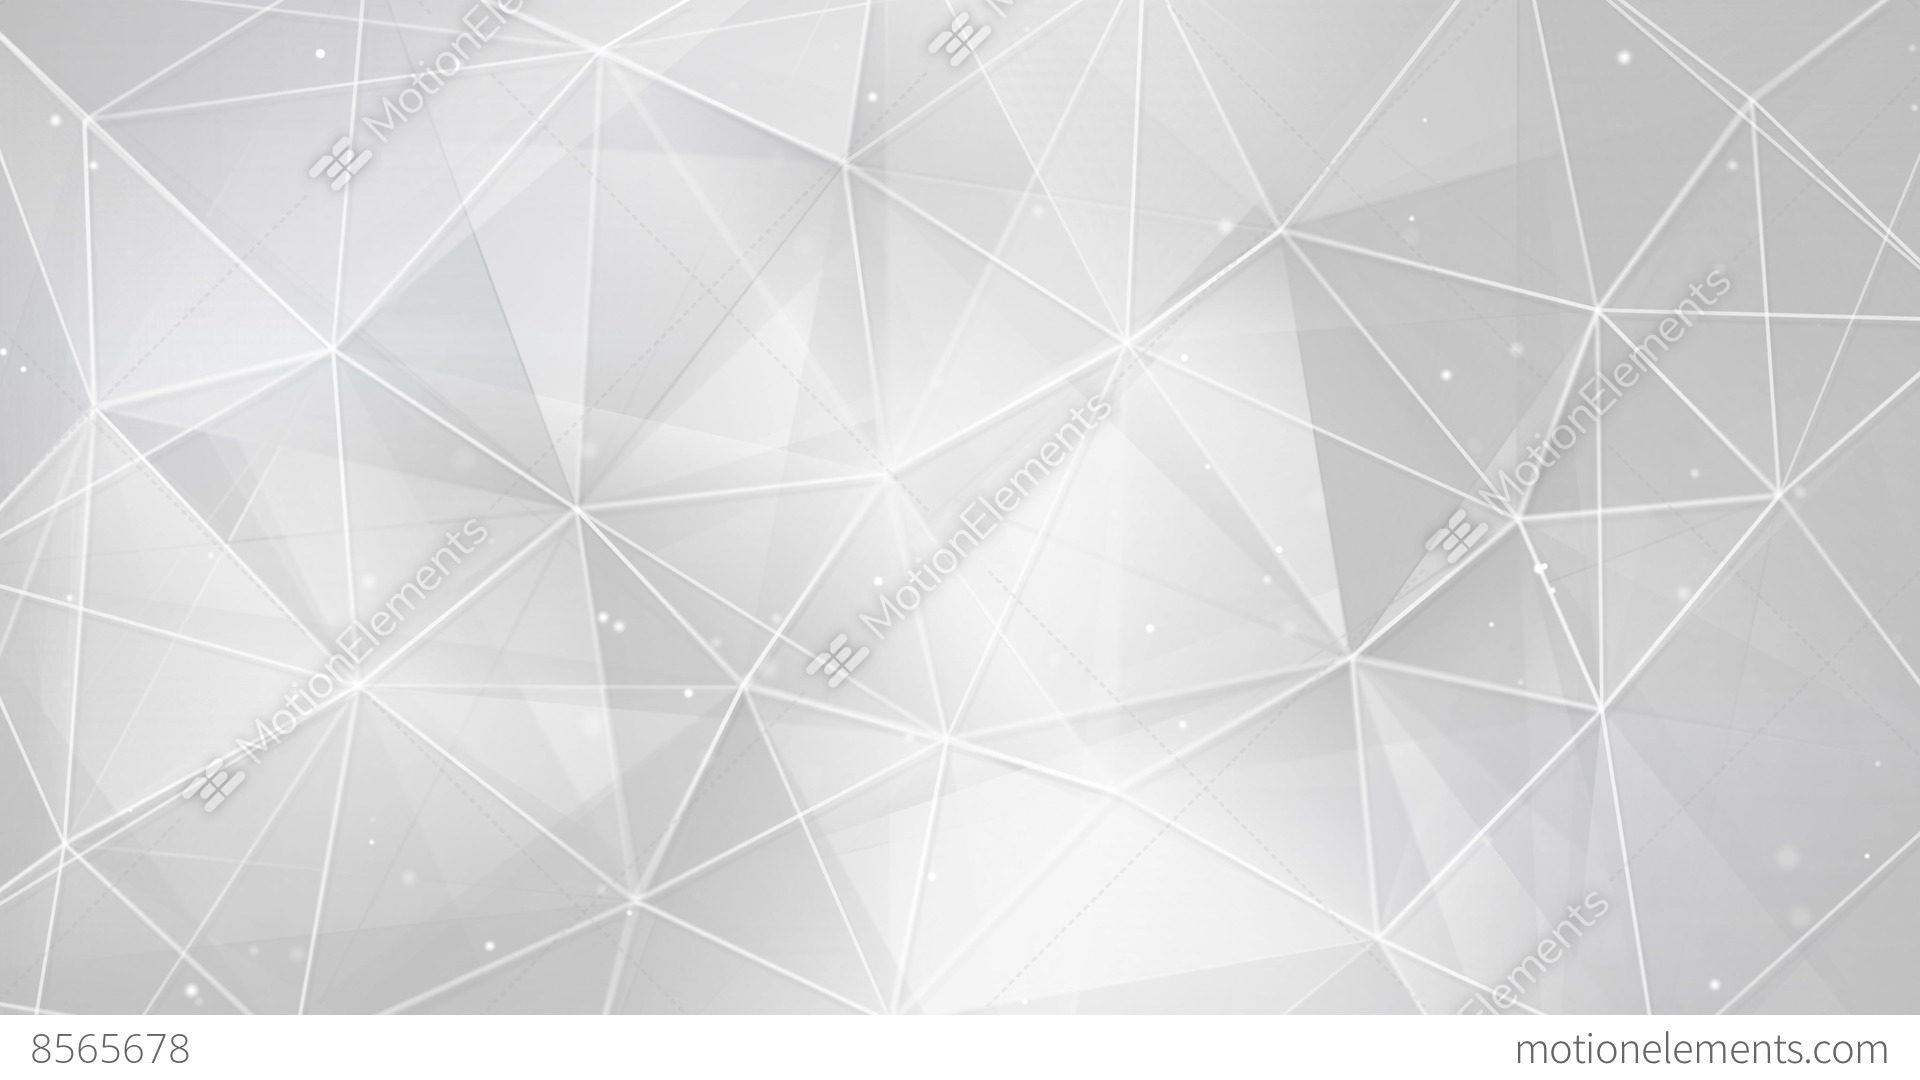 Cute Line Wallpaper Abstract White Triangles And Lines Background Seamless